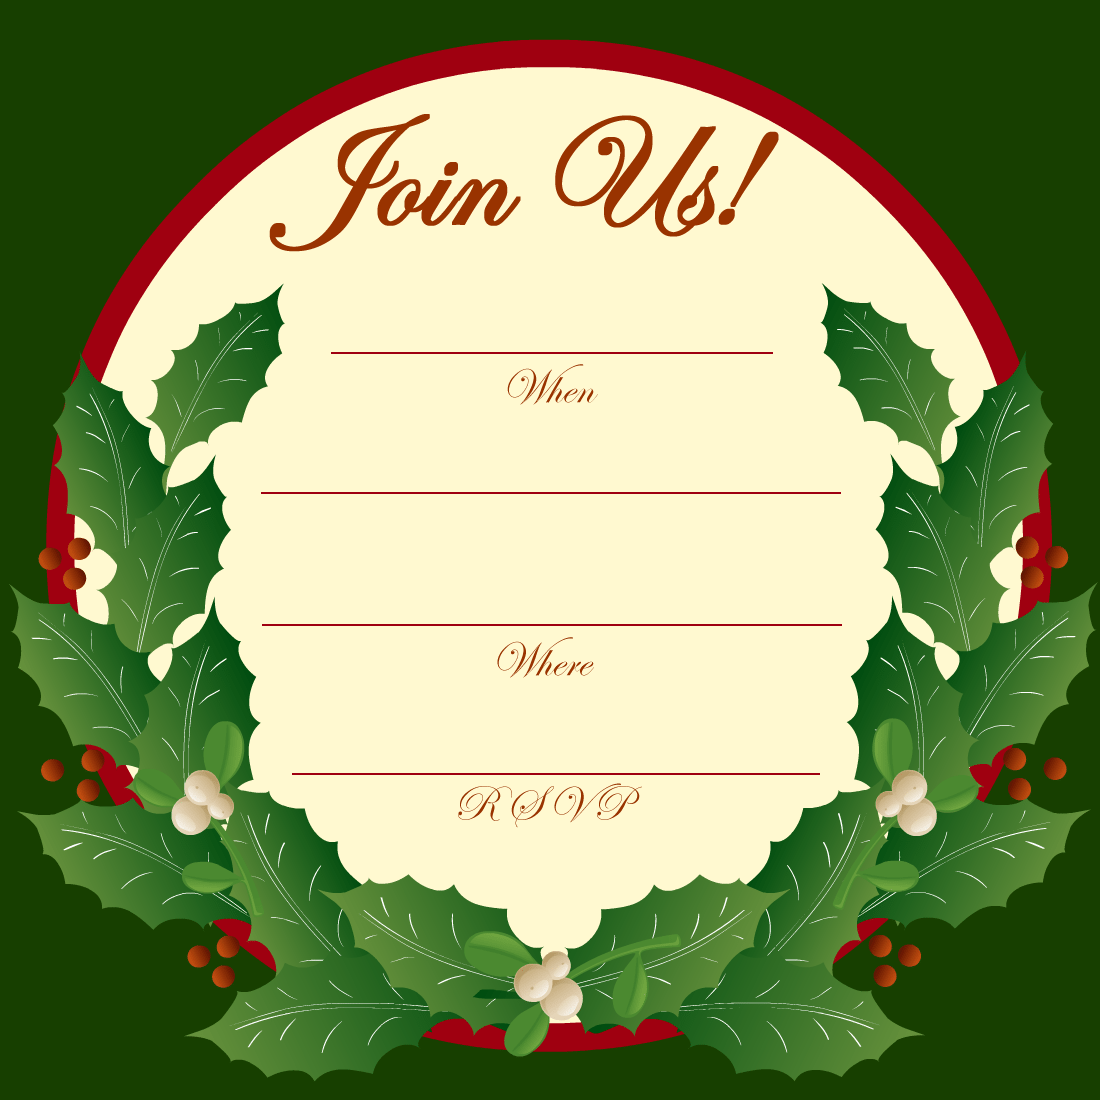 Free Christmas Party Invitation Clipart